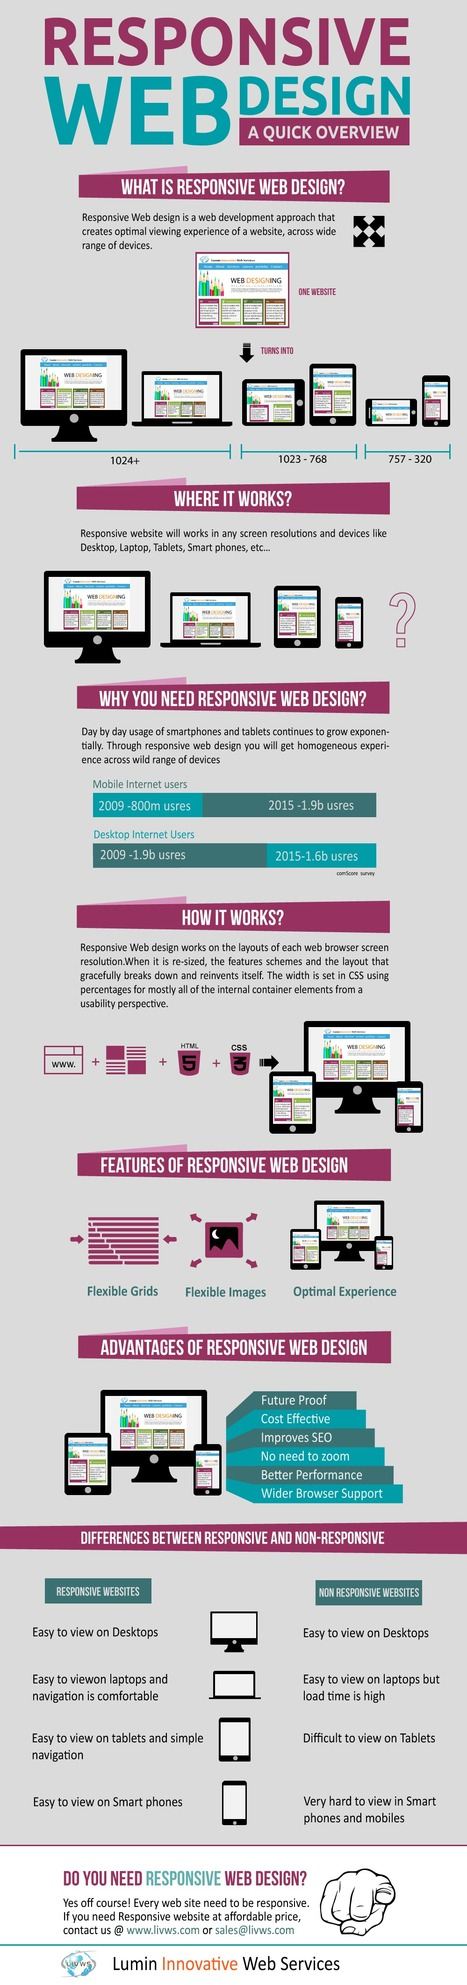 Responsive Web Design A Quick Over View – Info graph | LIVWS- Web Designing and Development Services,SEO Company in India | Web Designing & Development | Scoop.it